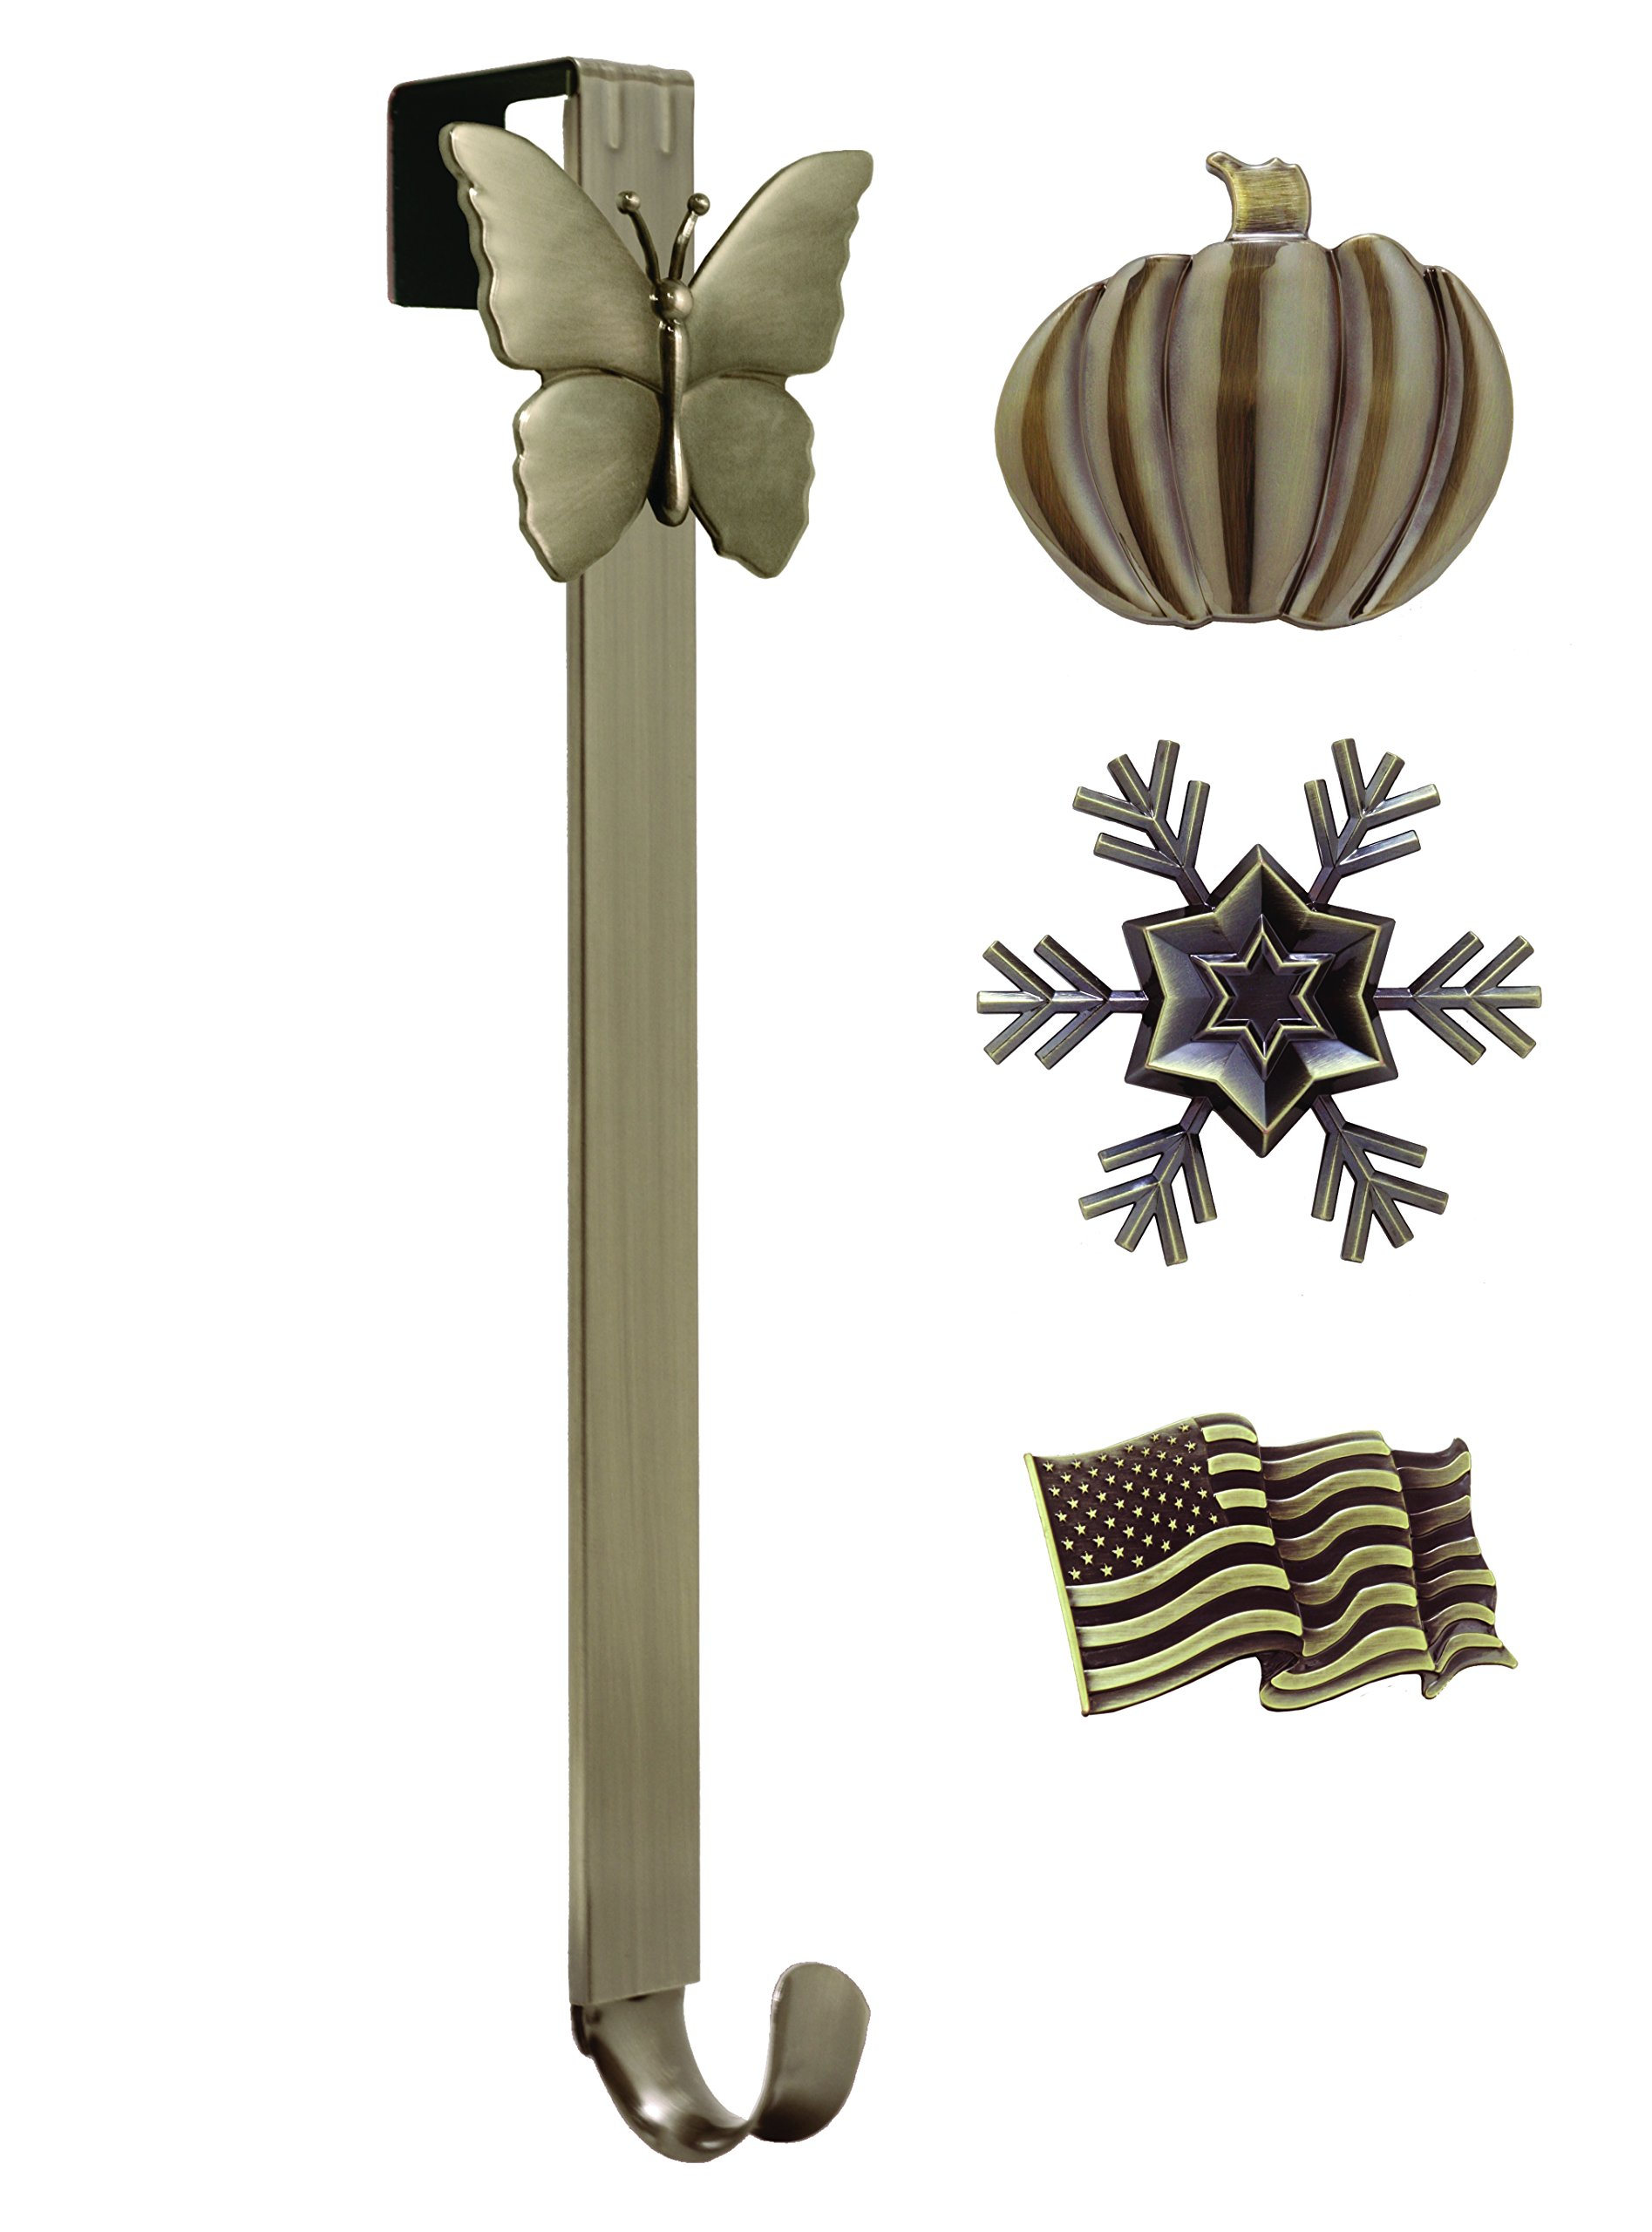 Adjustable Length Wreath Hanger with Interchangeable Icons (4 WREATH HANGERS IN 1) (Oil-Rubbed Bronze-Flag/Snowflake/Butterfly/Pumpkin)